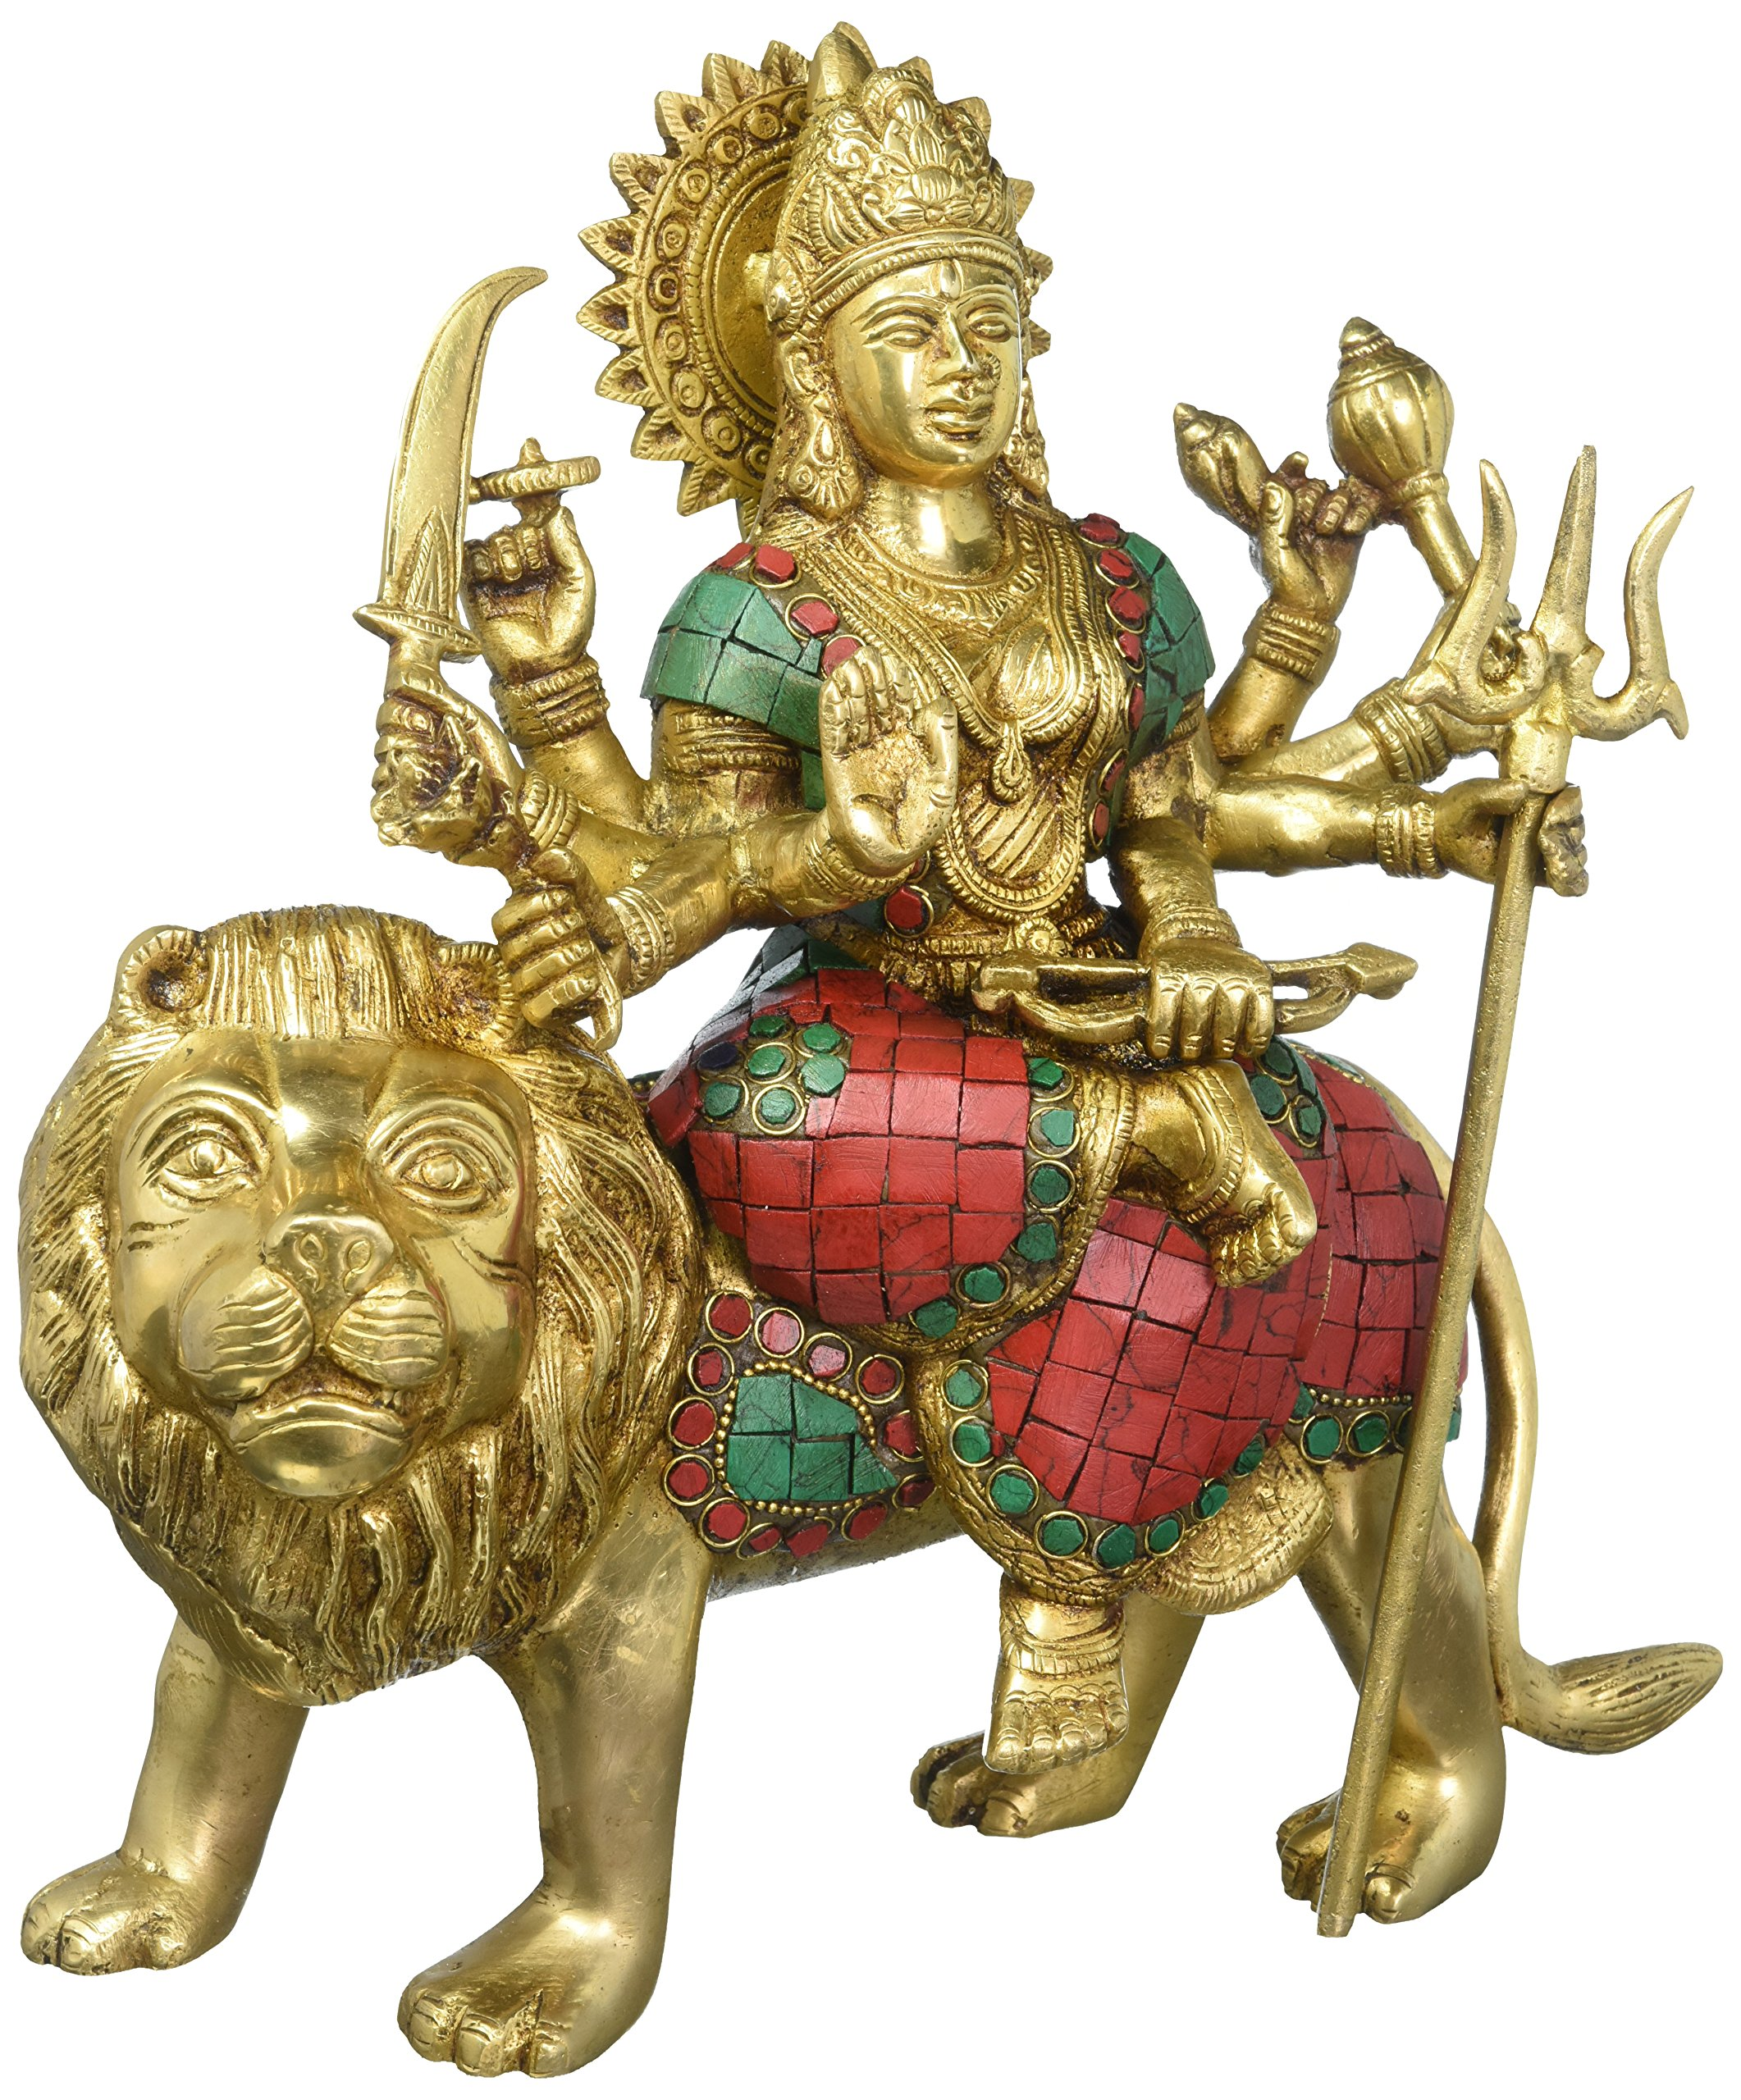 Aone India 11'' Large Durga Idol Hindu Goddess Brass Sculpture Maa Durga Kali Statue Diwali Decor Gifts + Cash Envelope (Pack Of 10)